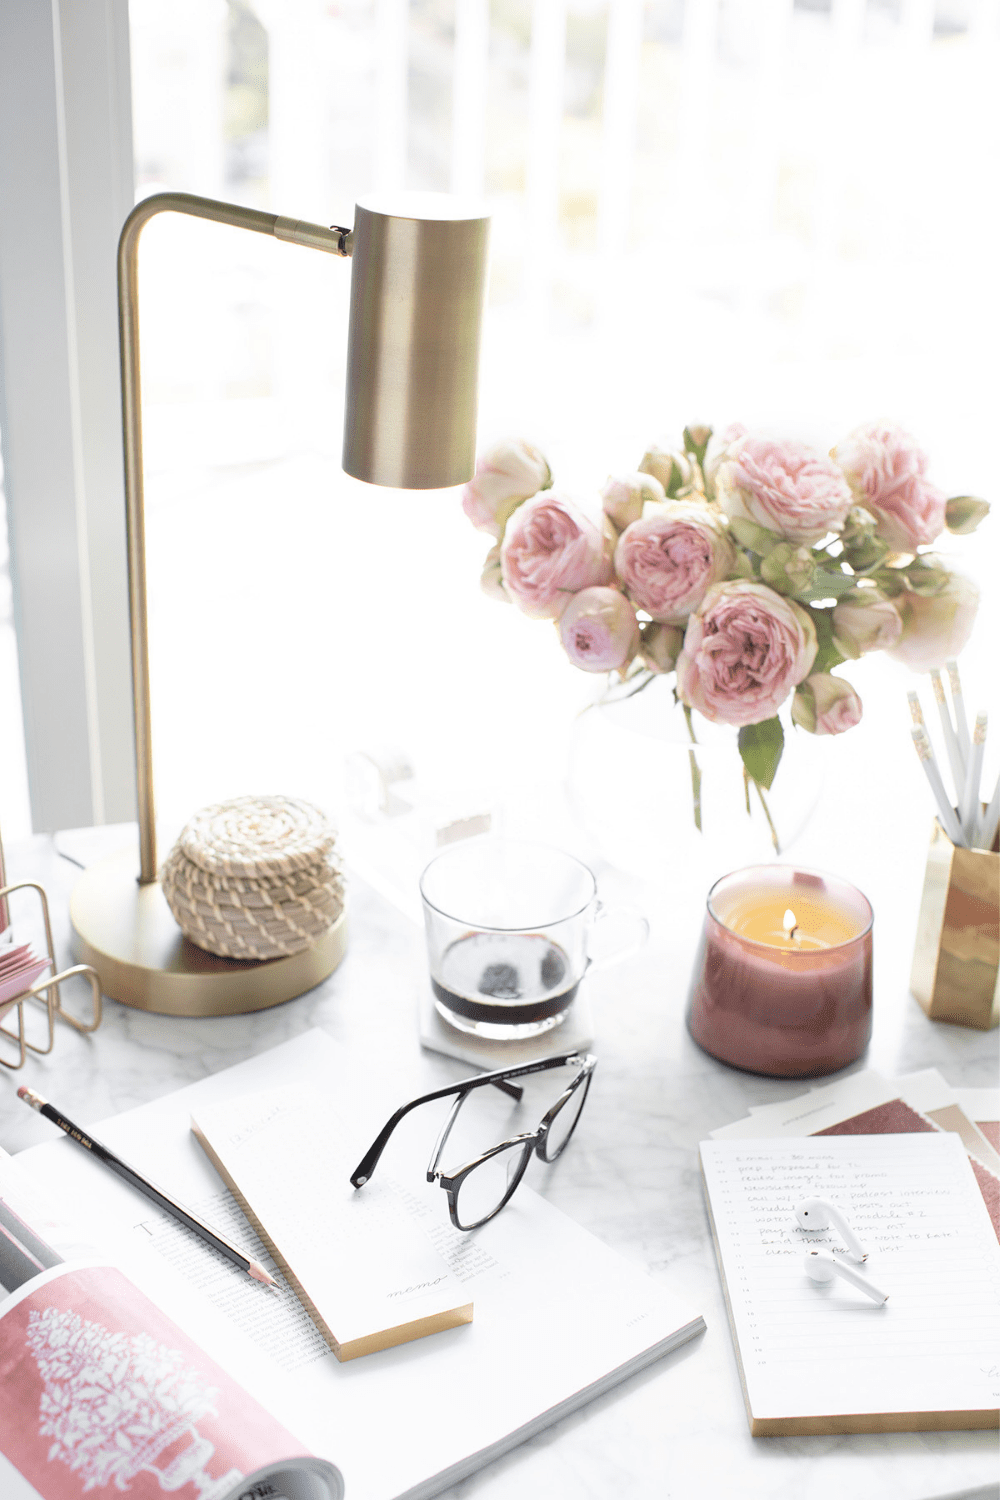 Diary of the Busy Bride | Katie Bryant